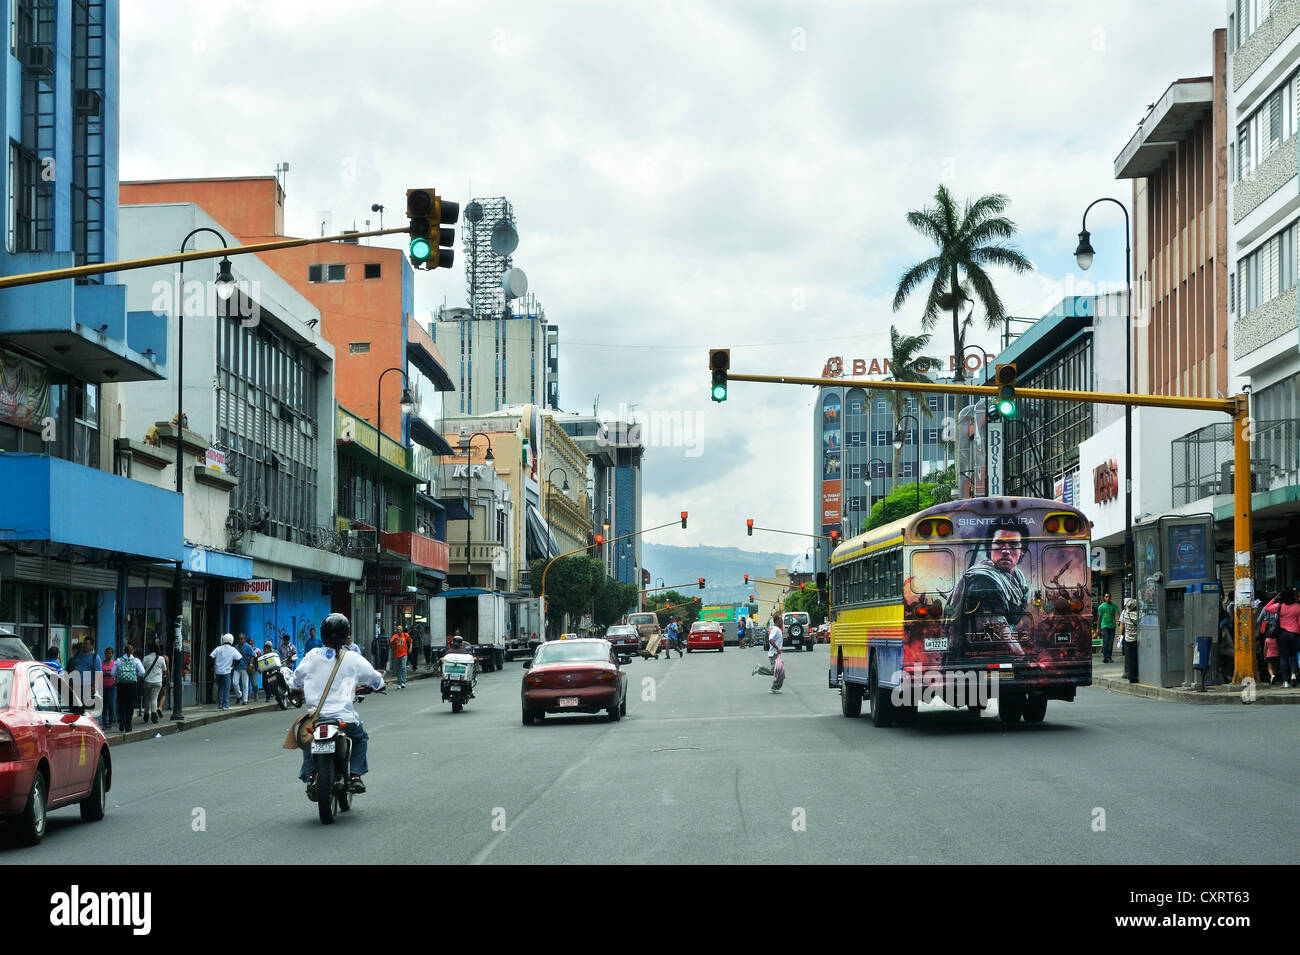 Painted bus and many traffic lights, San Jose, Costa Rica, Central America - Stock Image